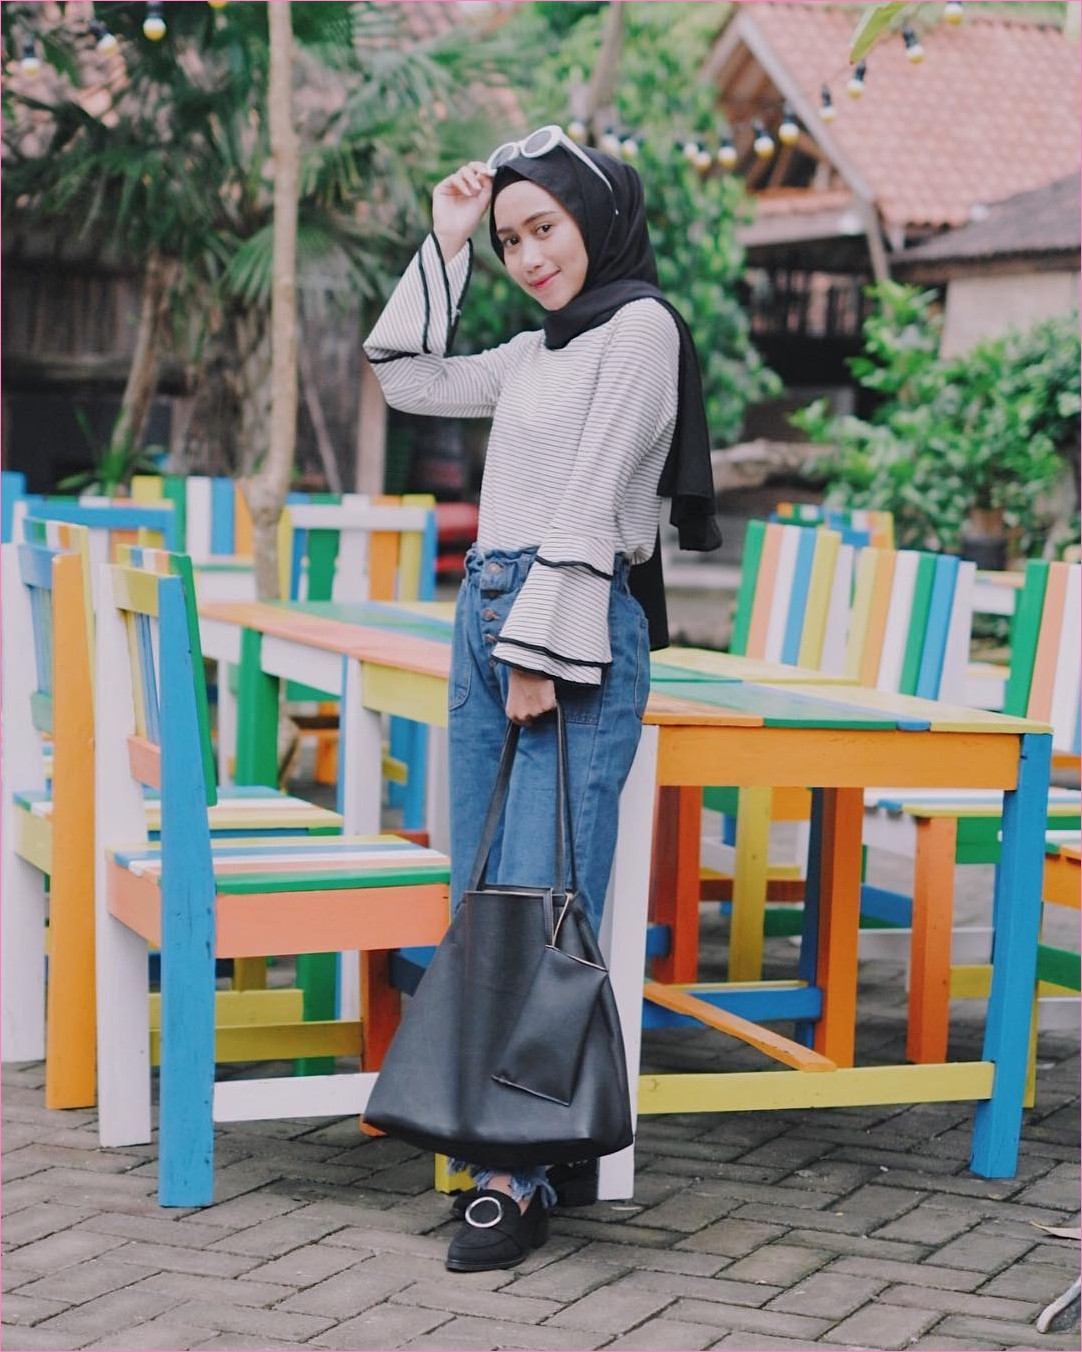 Outfit Celana Jeans Untuk Hijabers Ala Selebgram 2018 top blouse stripe putih totebags hijab pashmina diamond hitam pants jeans denim ciput lace ups loafers and slip ons kacamata bulat ootd trendy